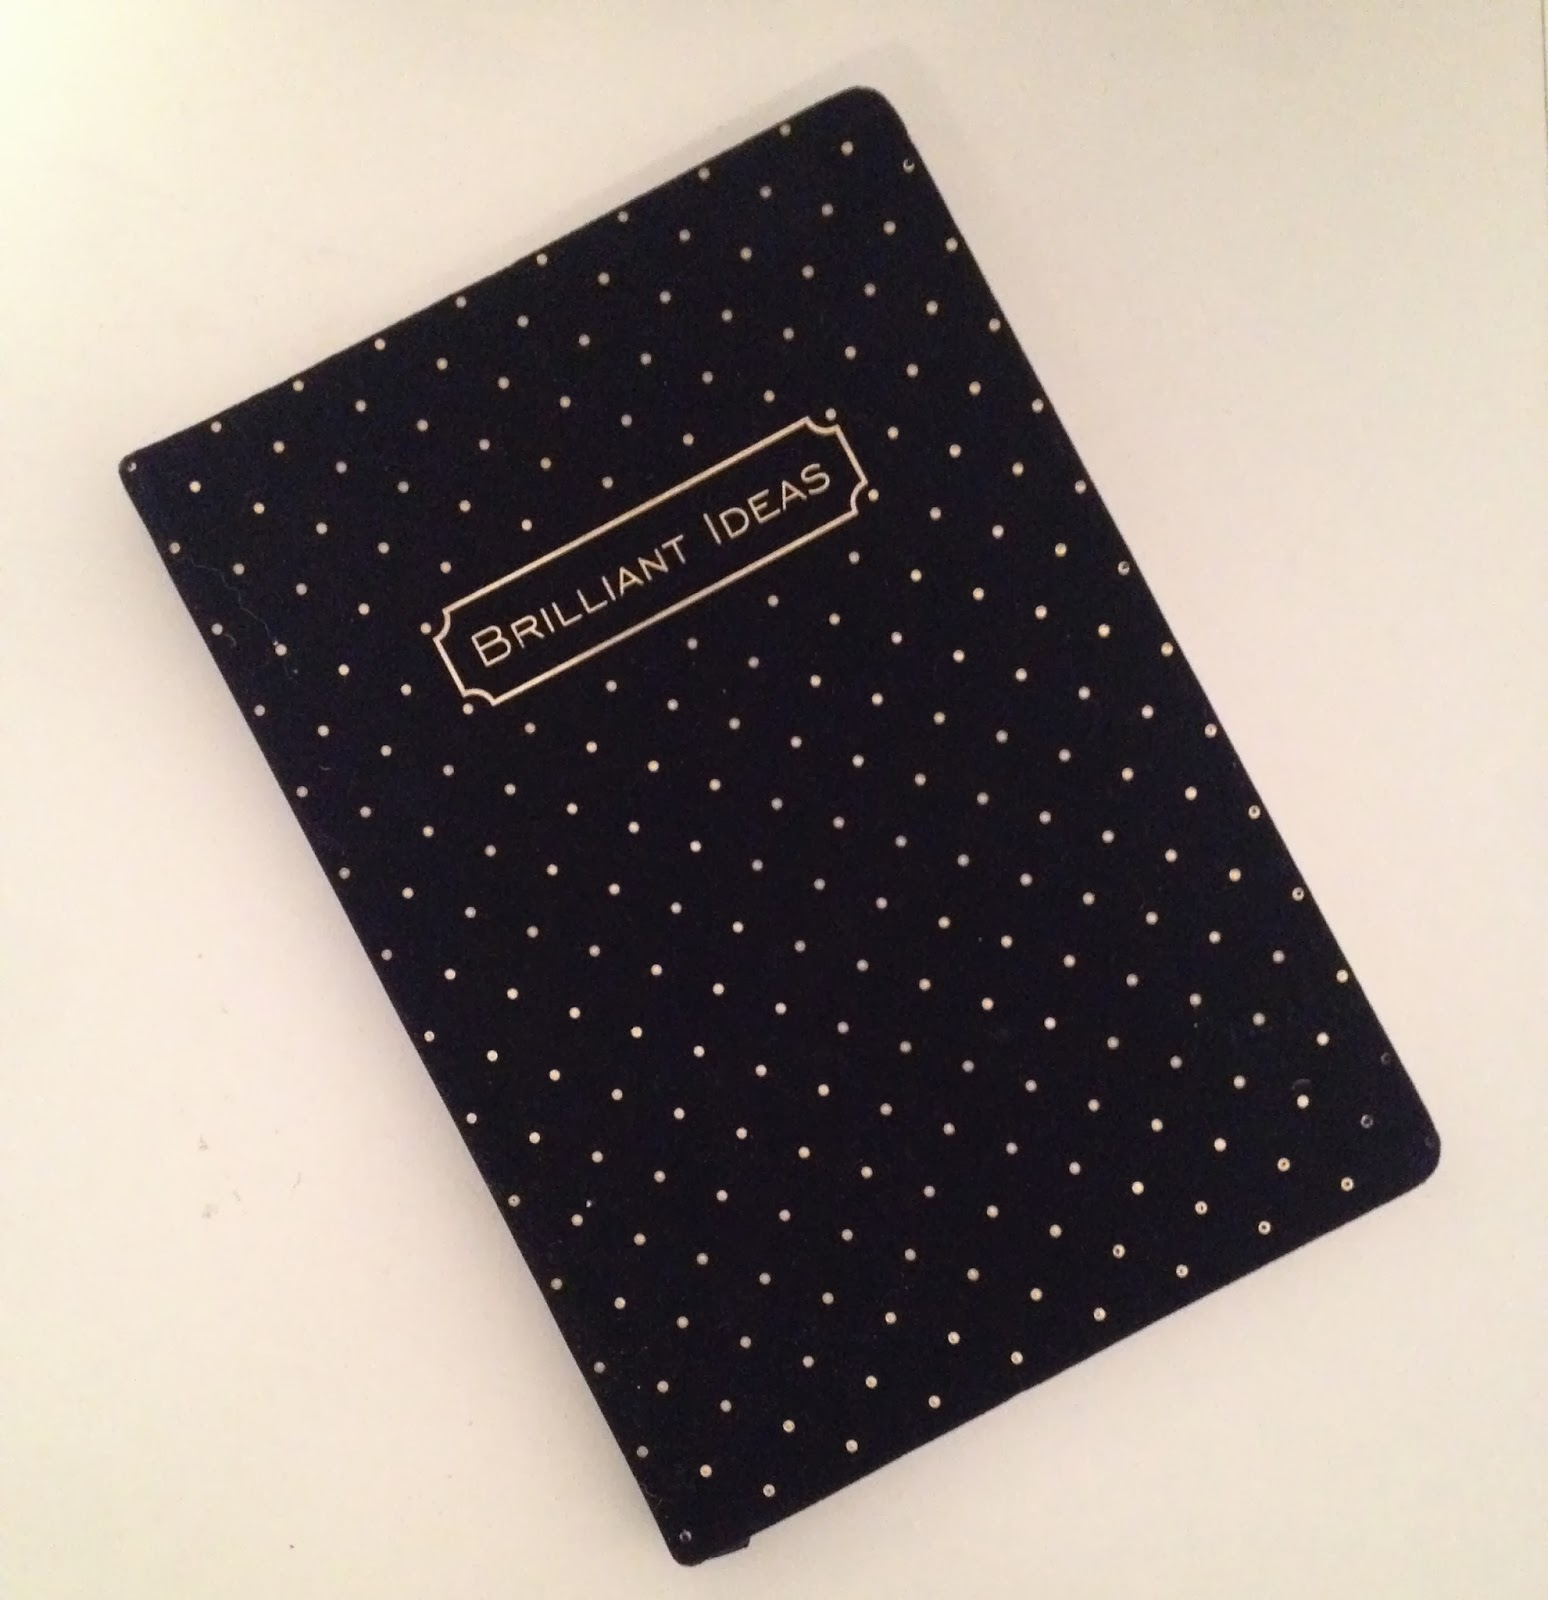 brilliant ideas velvet notebook